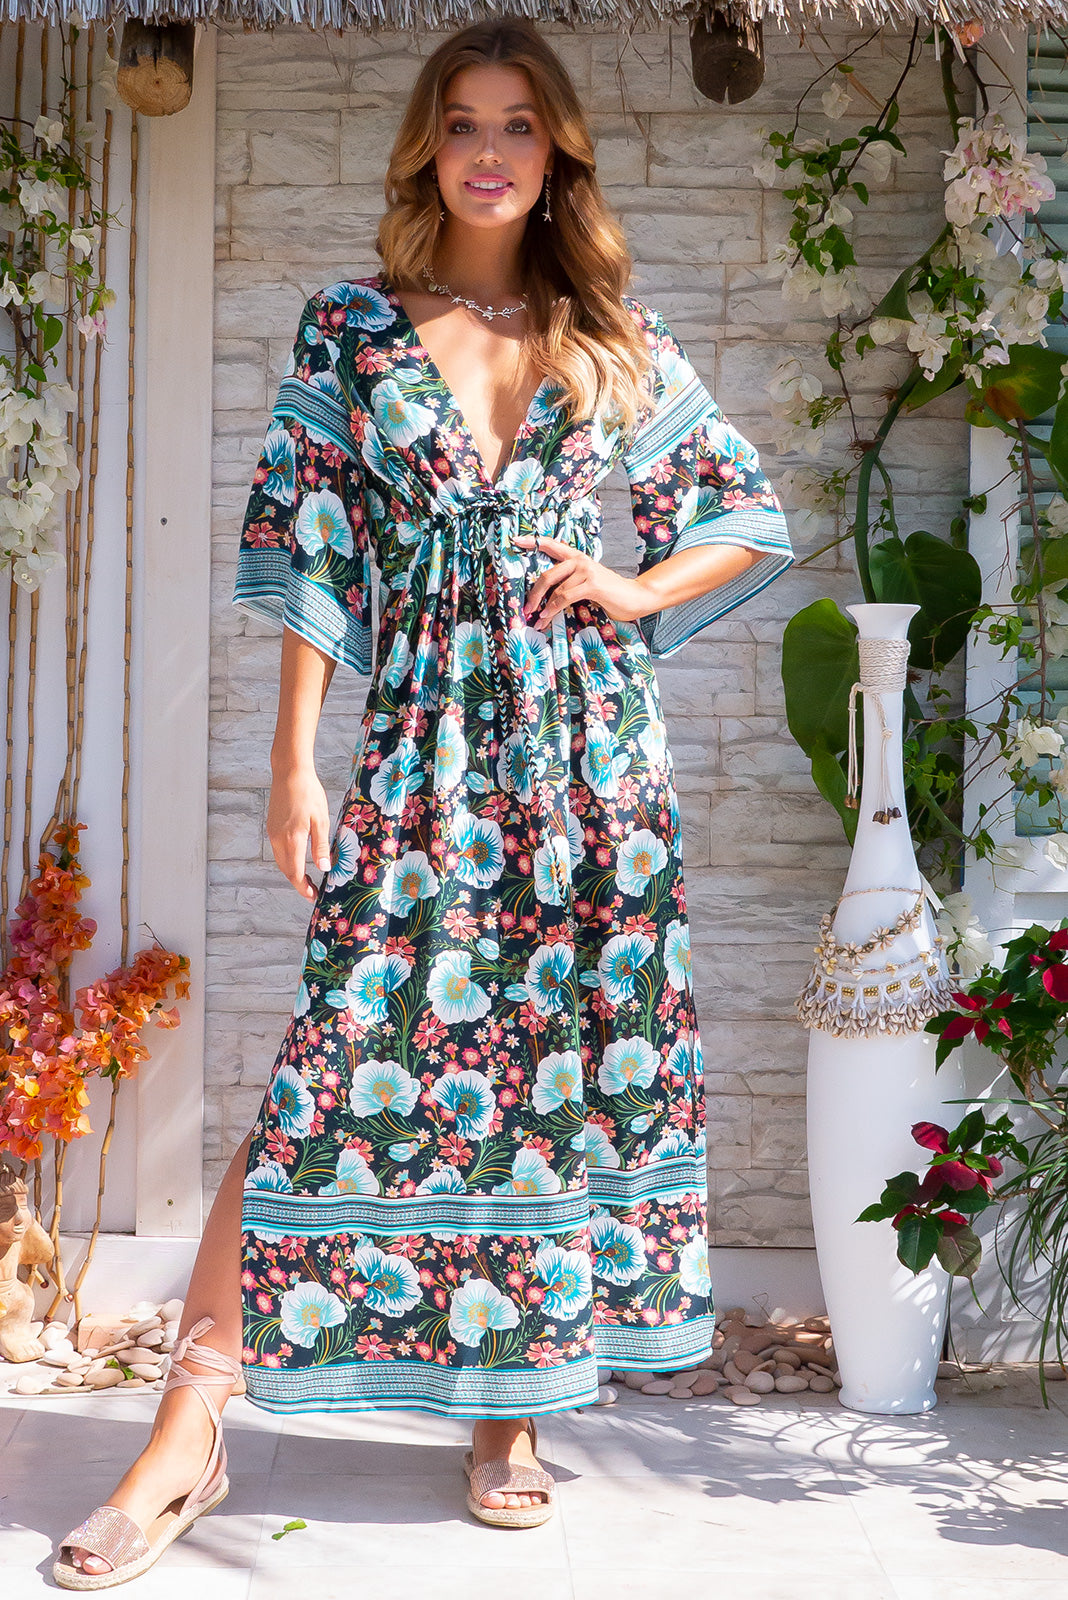 Annabella Temptation Teal Caftan Maxi Dress Floral Print Holiday Bohemian Inspire Rayon  Dress with Pockets and Plunge Neckline.